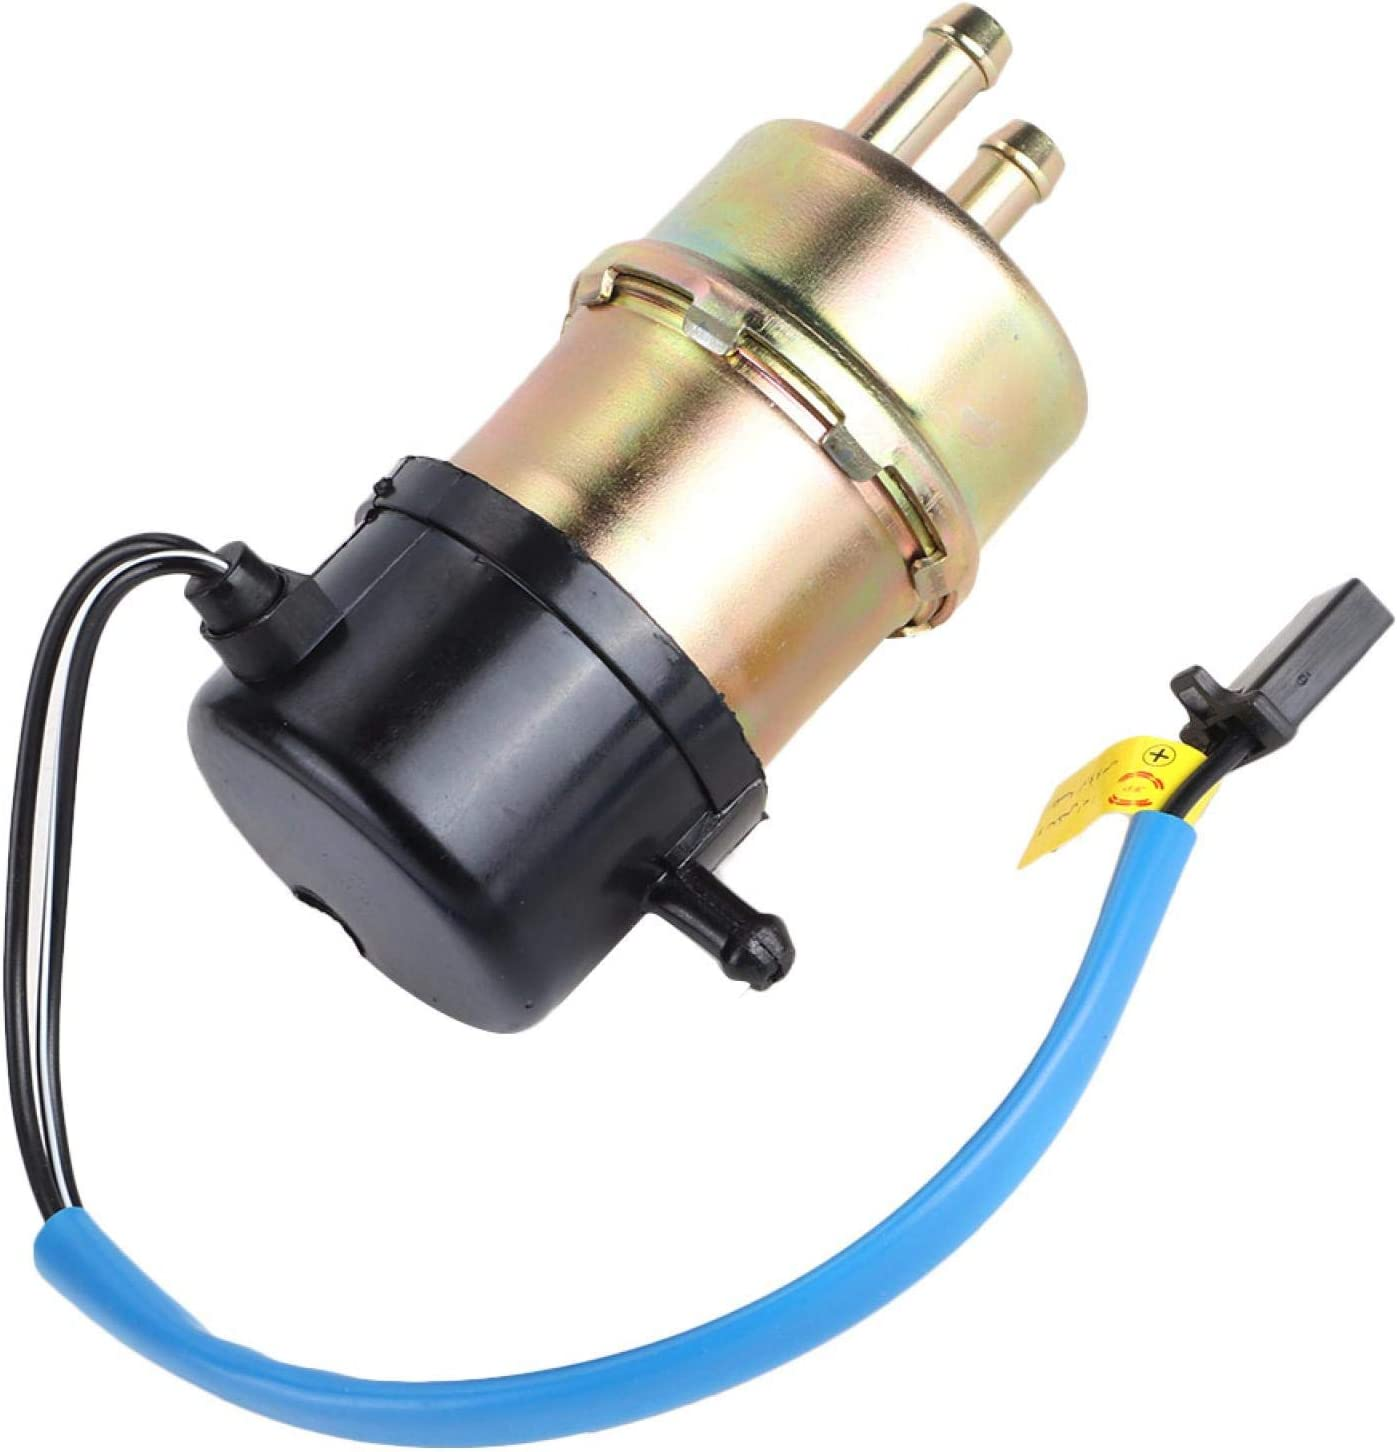 Duokon Motorcycle Fuel Pump Replacement, Fit for ZX6R/ZX600/ZX600J ZX600G/ZX600F